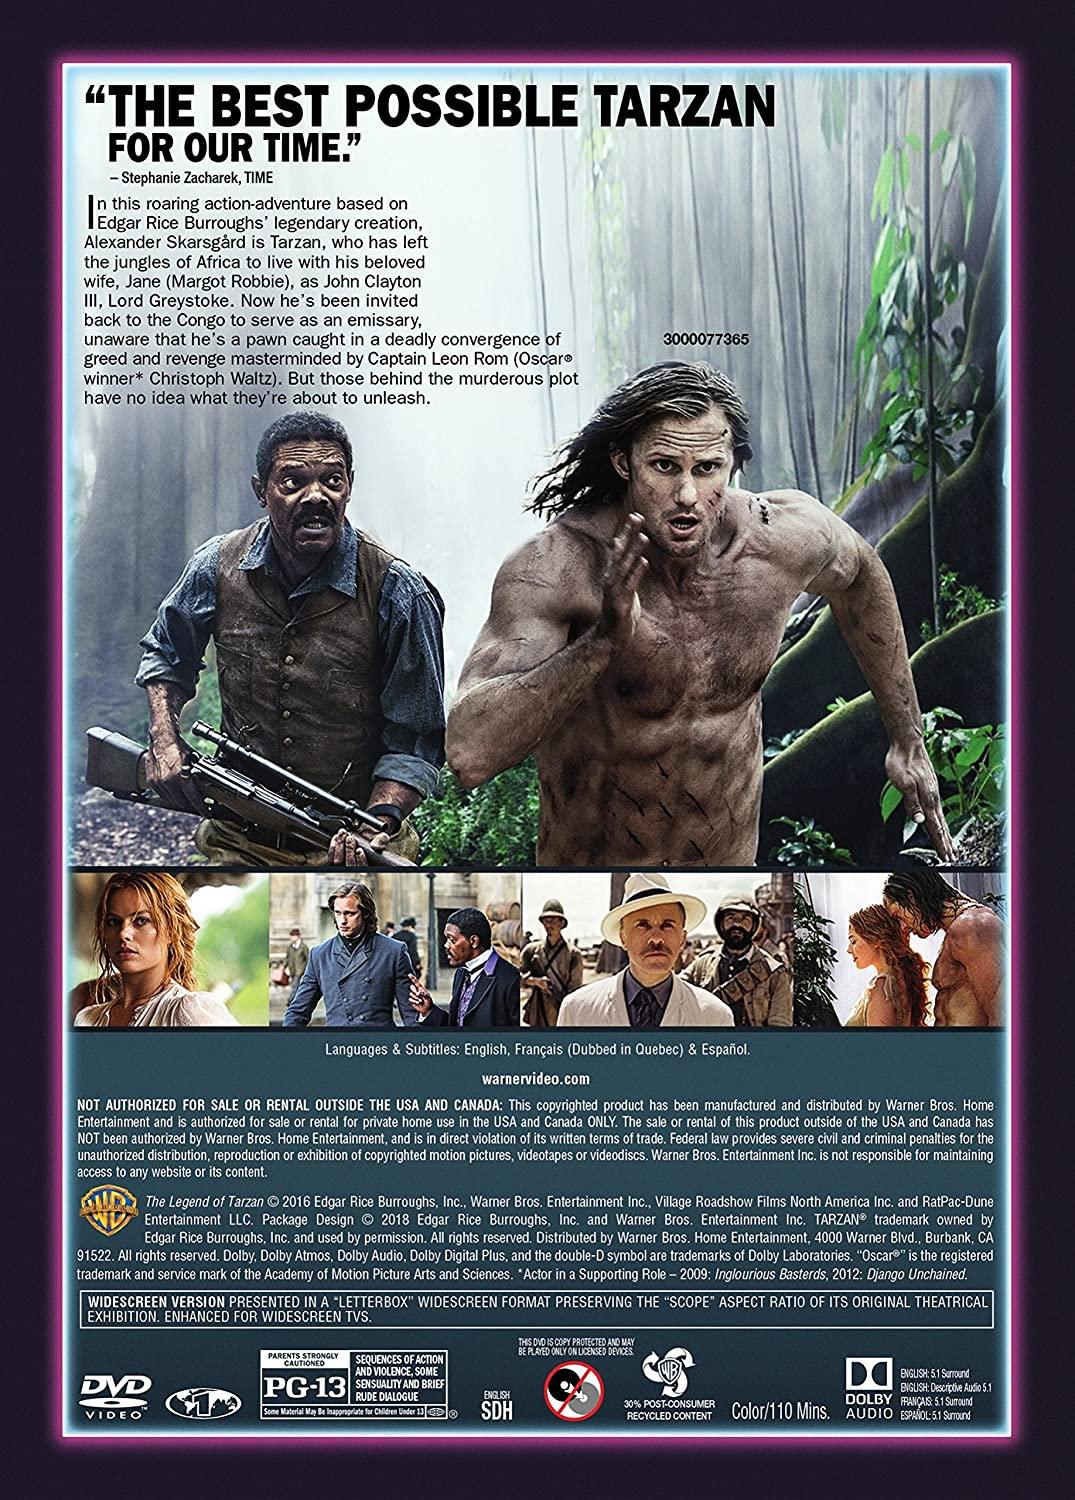 Amazon.com: The Legend of Tarzan: Adam Cozad, Craig Brewer, Alexander Skarsgård, Samuel L. Jackson, Margot Robbie, Djimon Hounsou, Ella Purnell, ...